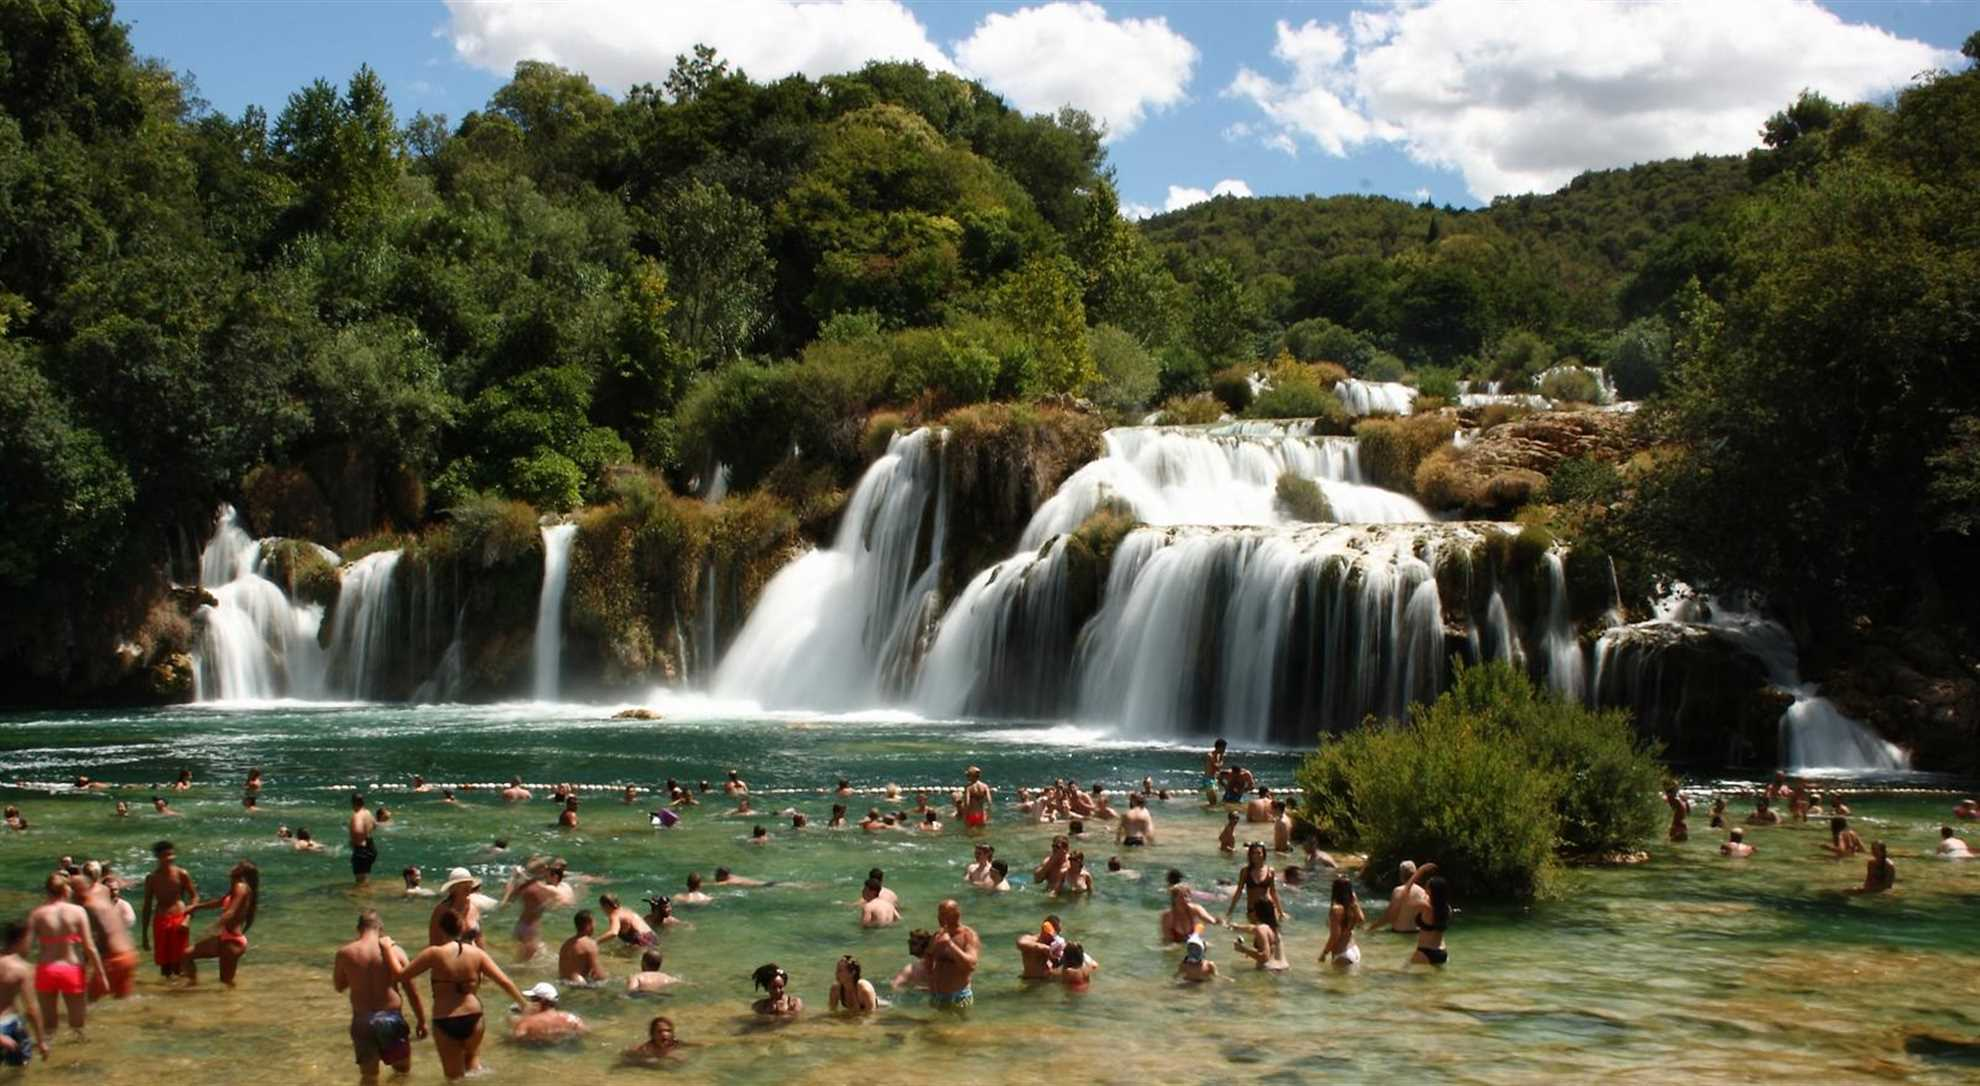 Skradinski Buk, the main waterfall of Krka River with swimming area